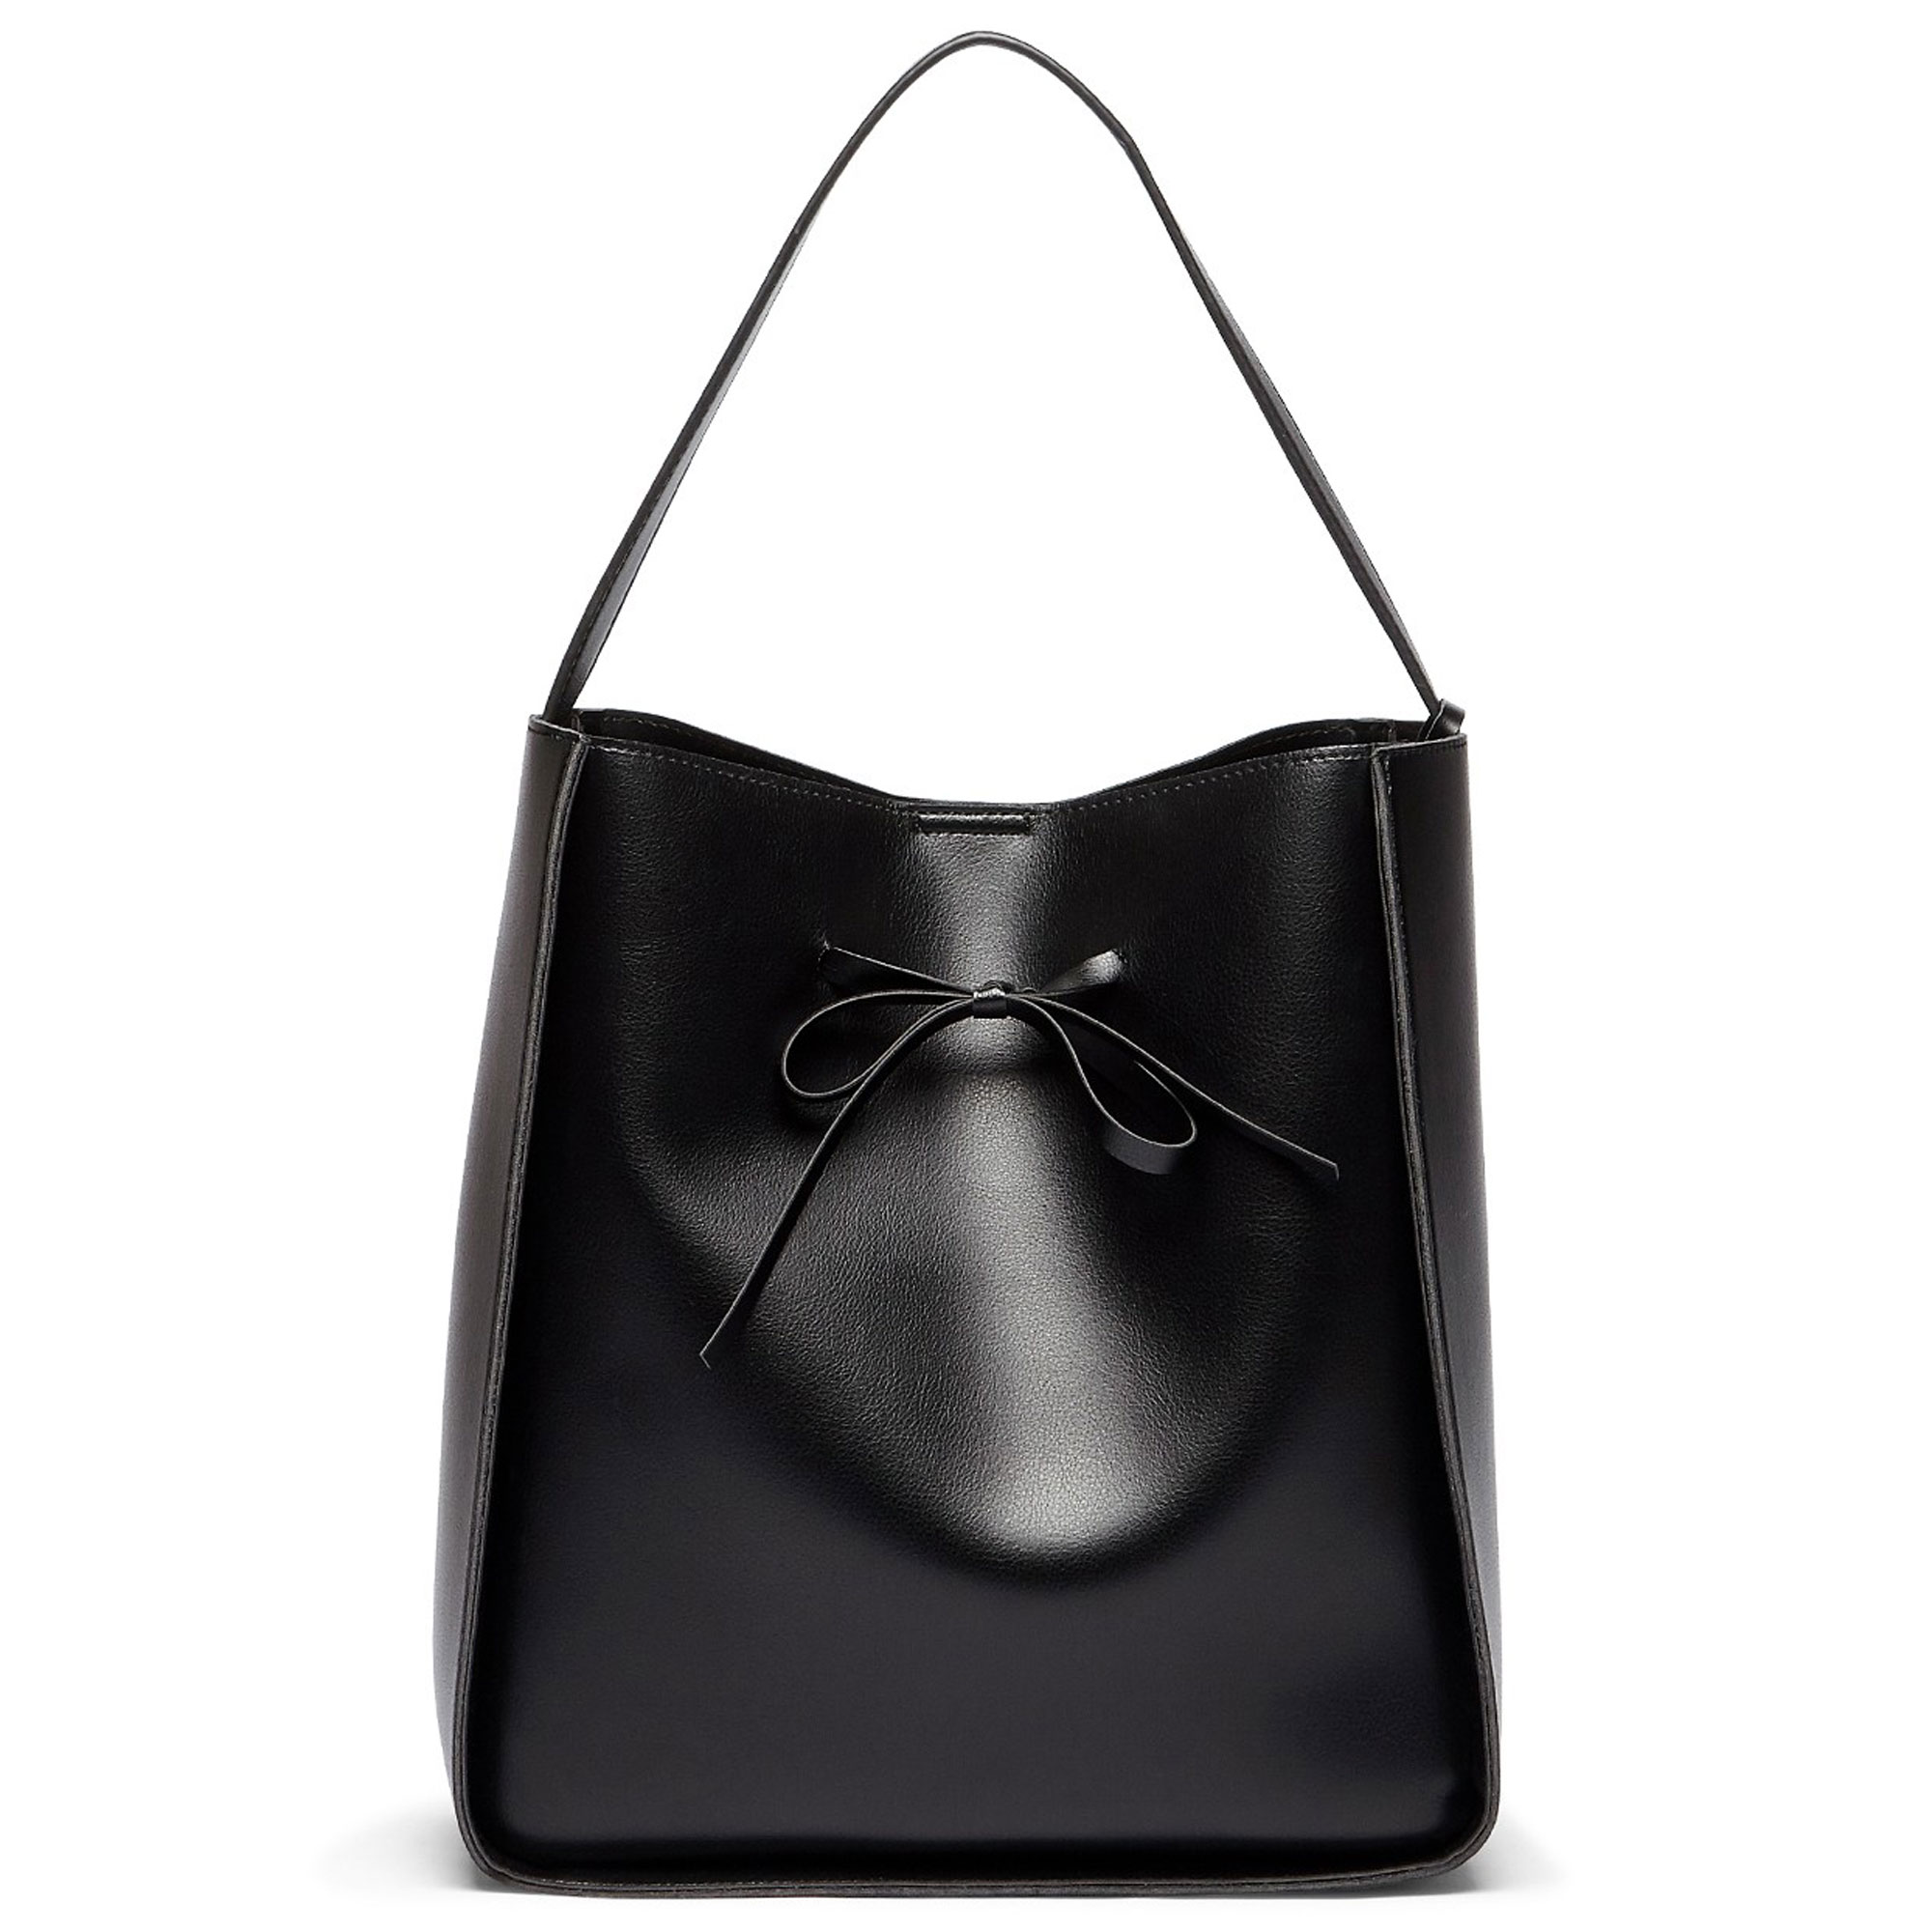 SPRING BAGS THAT LOOK EXPENSIVE - GalleryBlack handbagCourtesy Sole Society